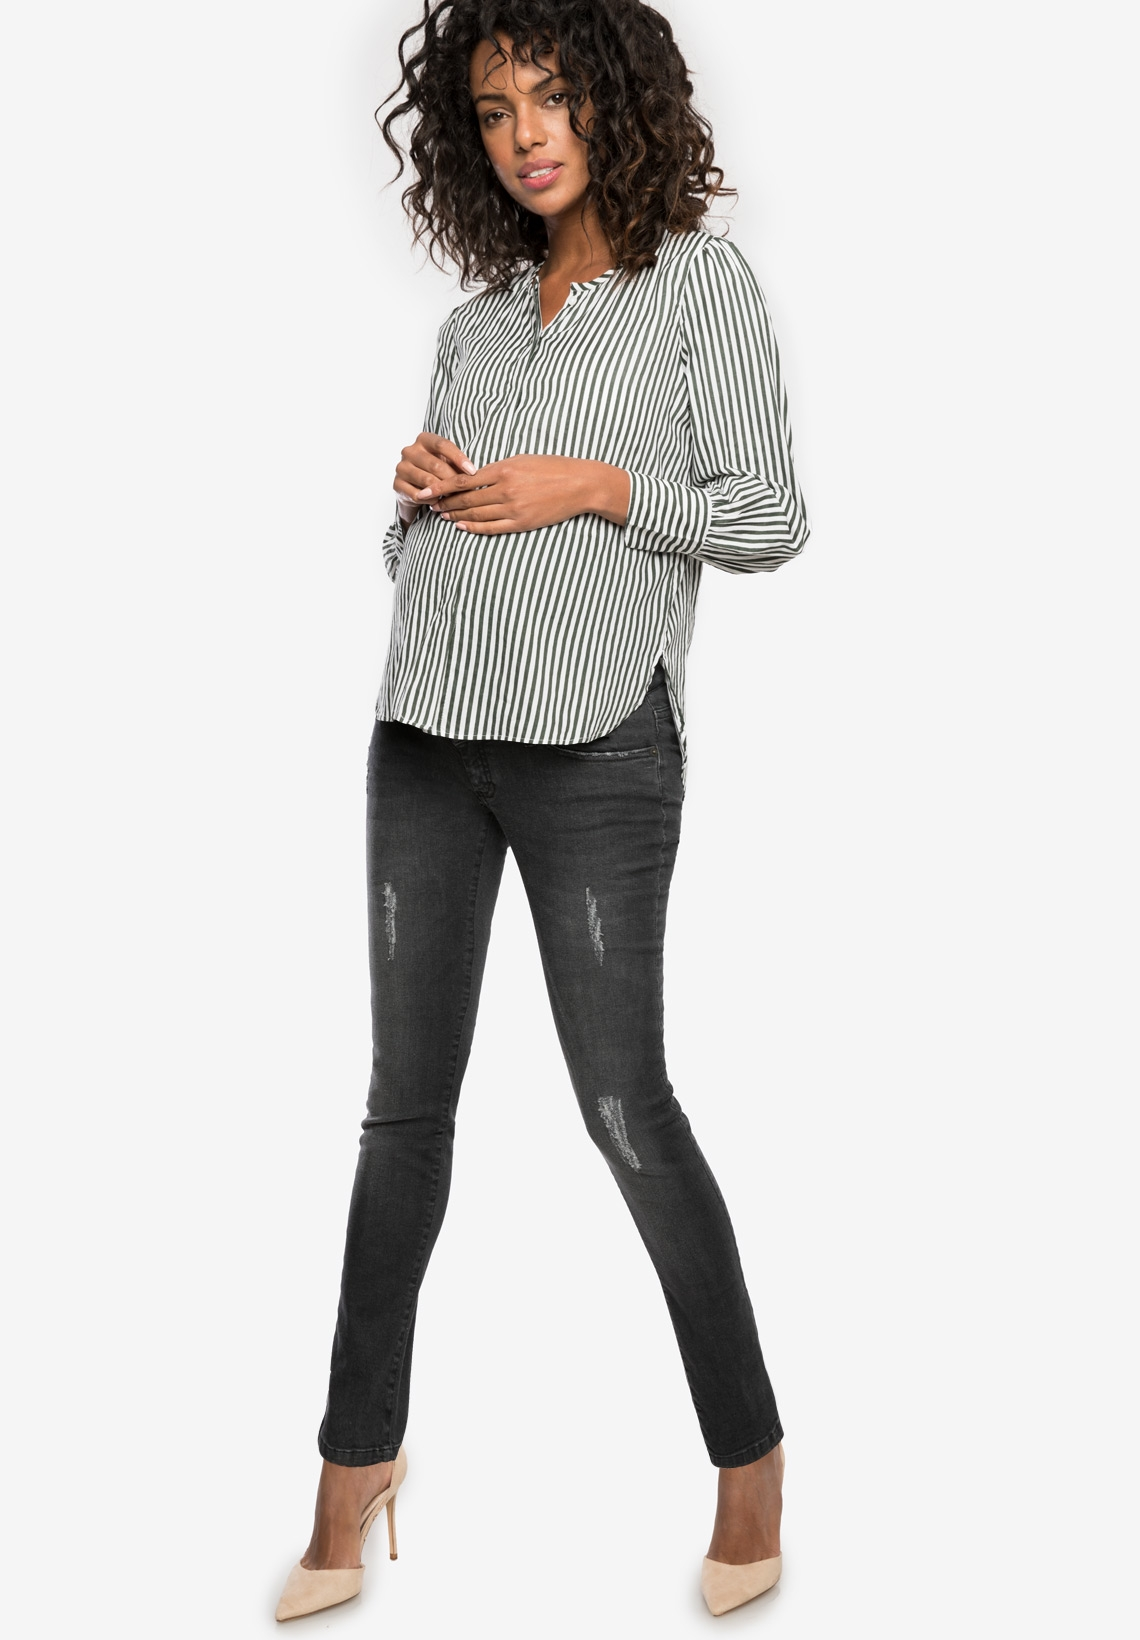 ea605c9d23736 CLINT DELUXE DESTROYED - Slim maternity jeans with over belly band - Envie  de Fraise ...